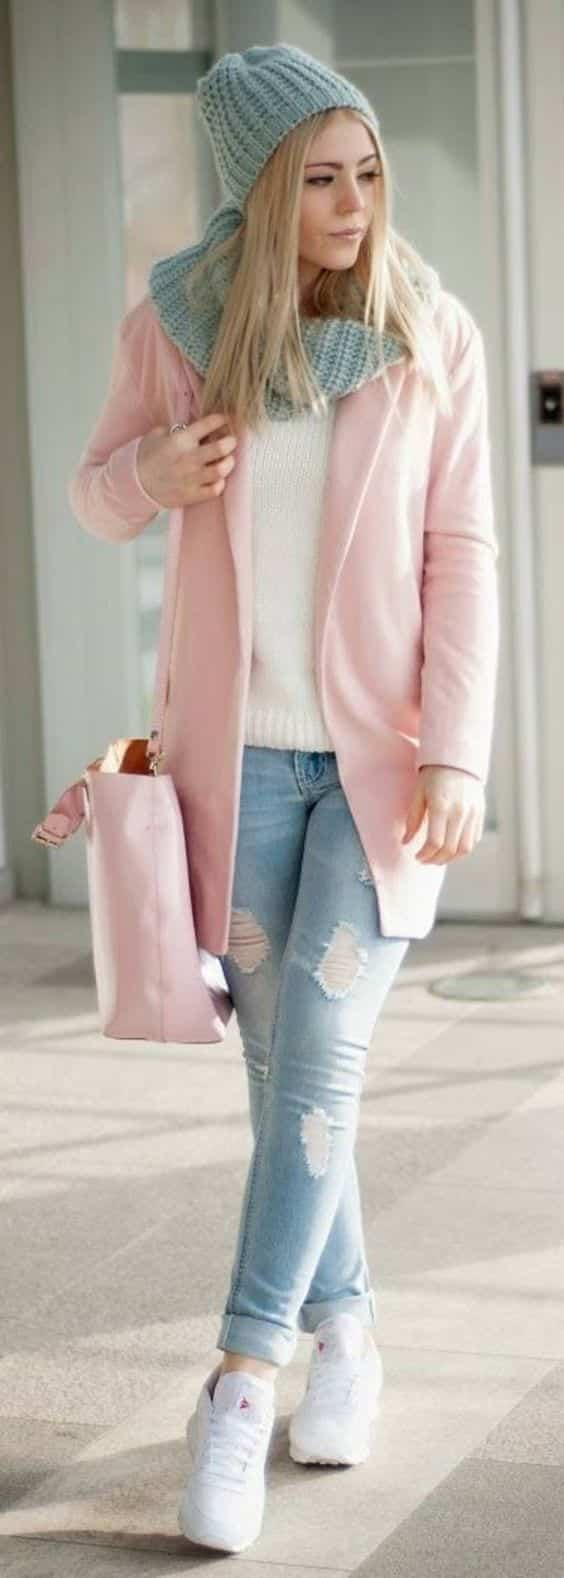 Pantone Color Inspired outfits (4)